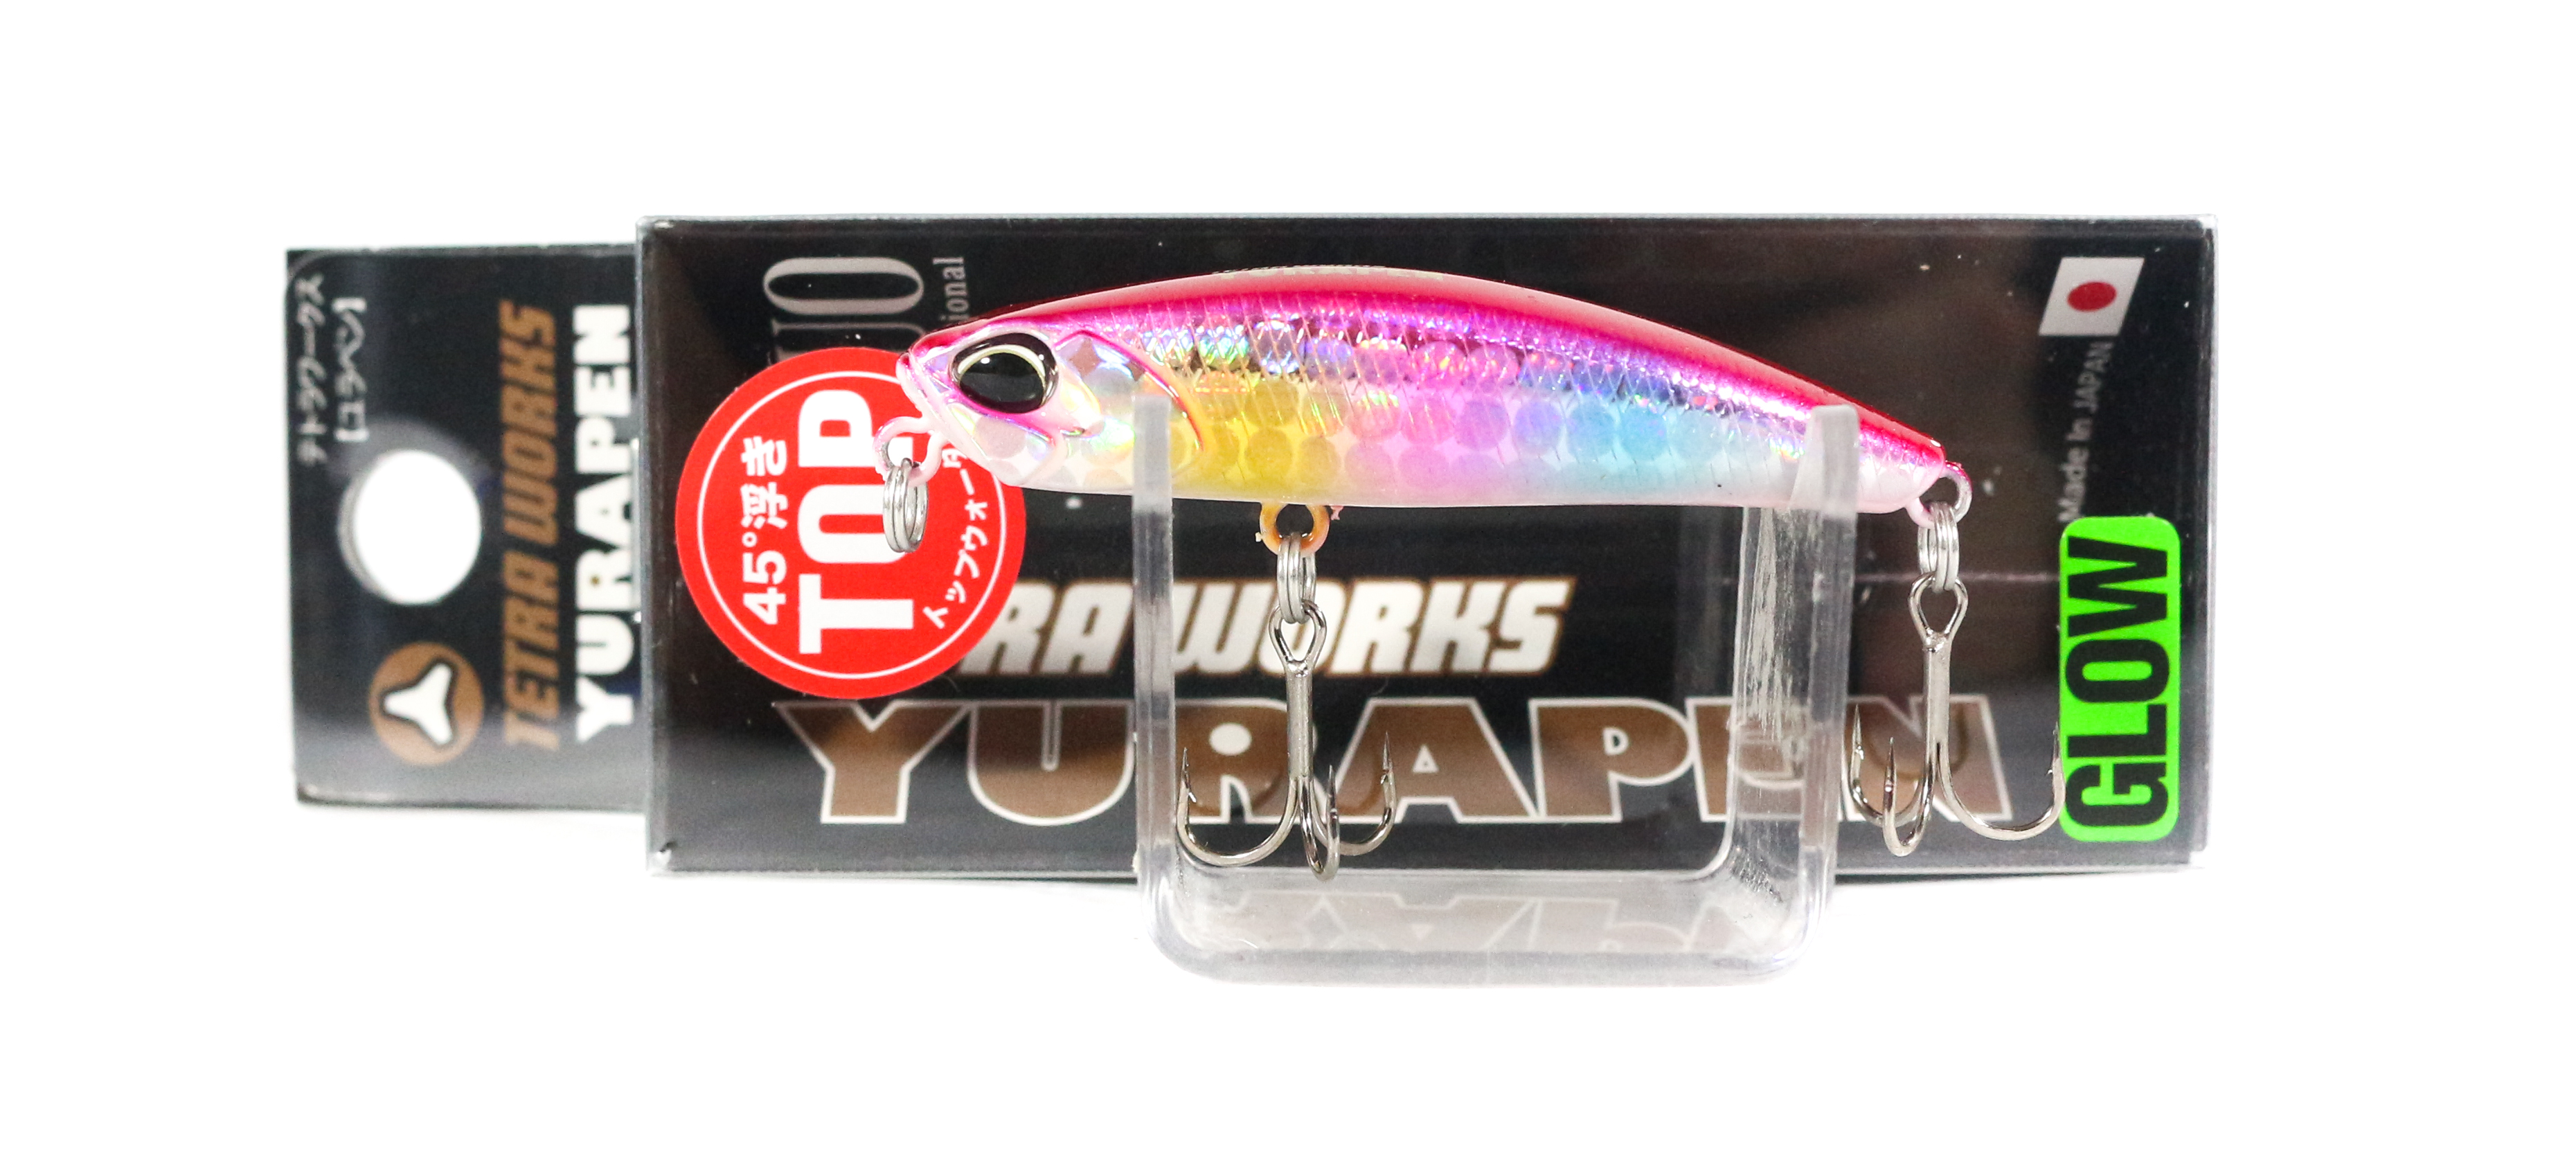 Duo Tetra Works Yurapen 48 mm Floating Lure AQA0313 (5062)